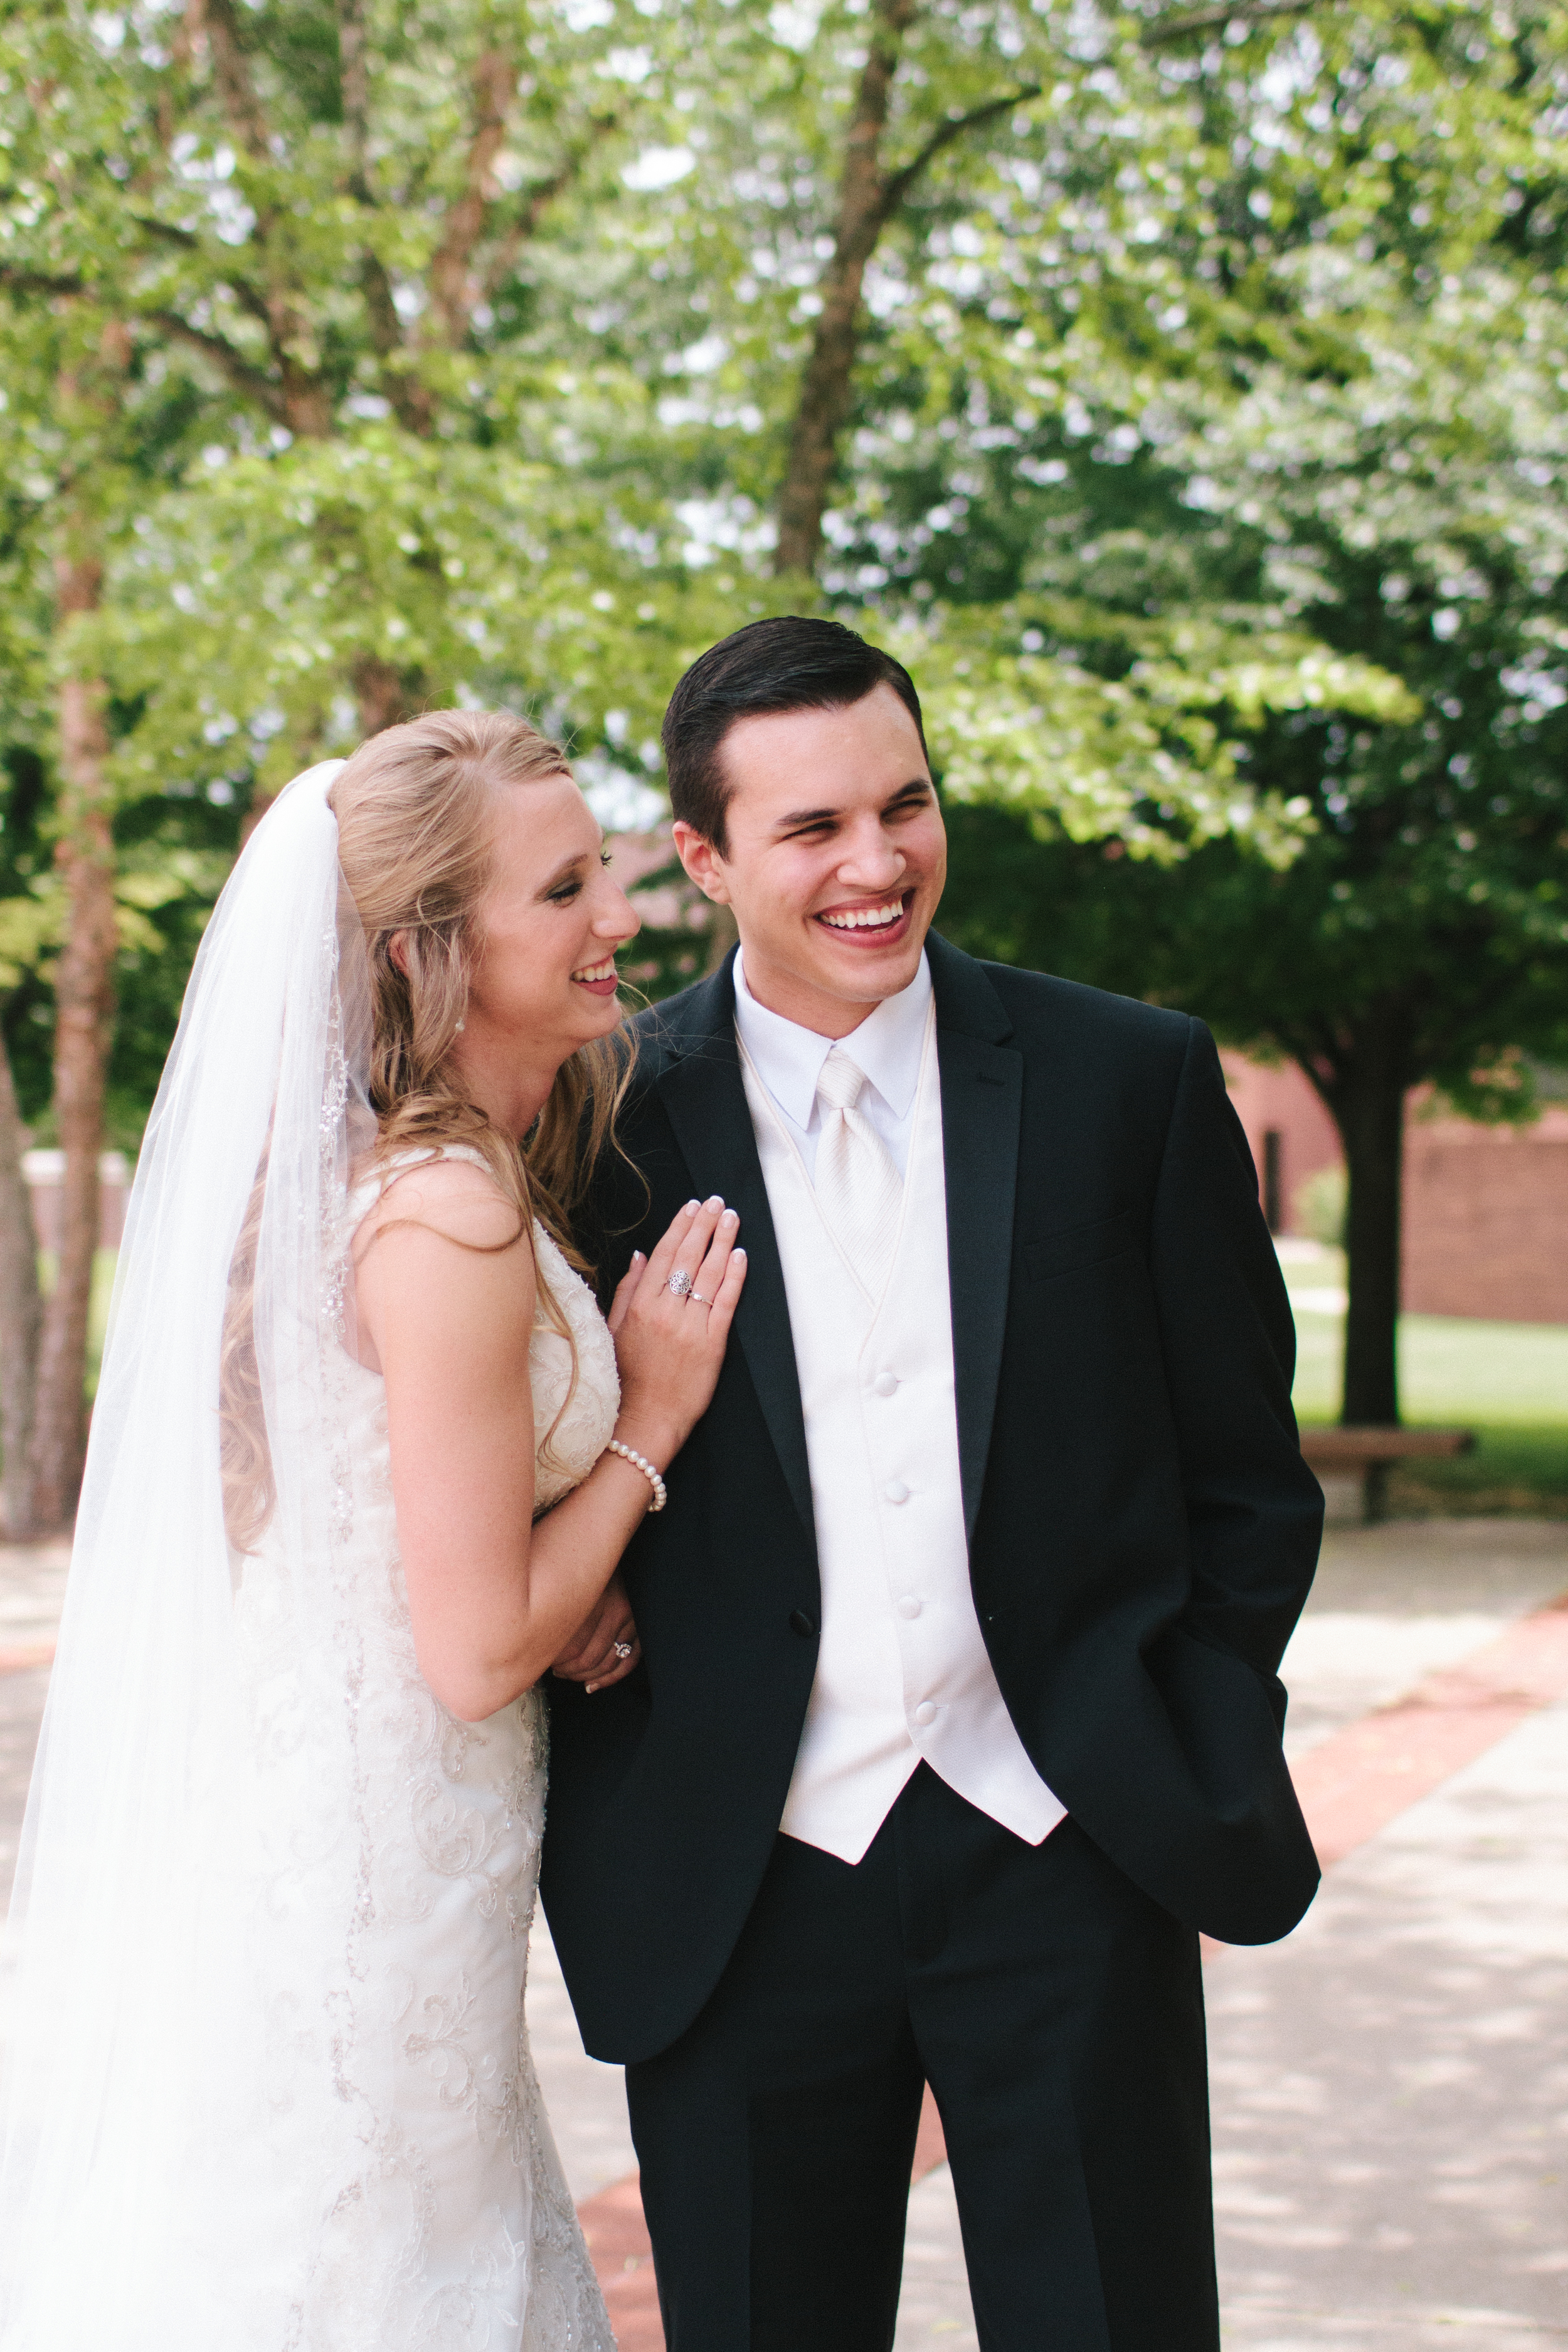 Andrew & Ande Color-4947.jpg